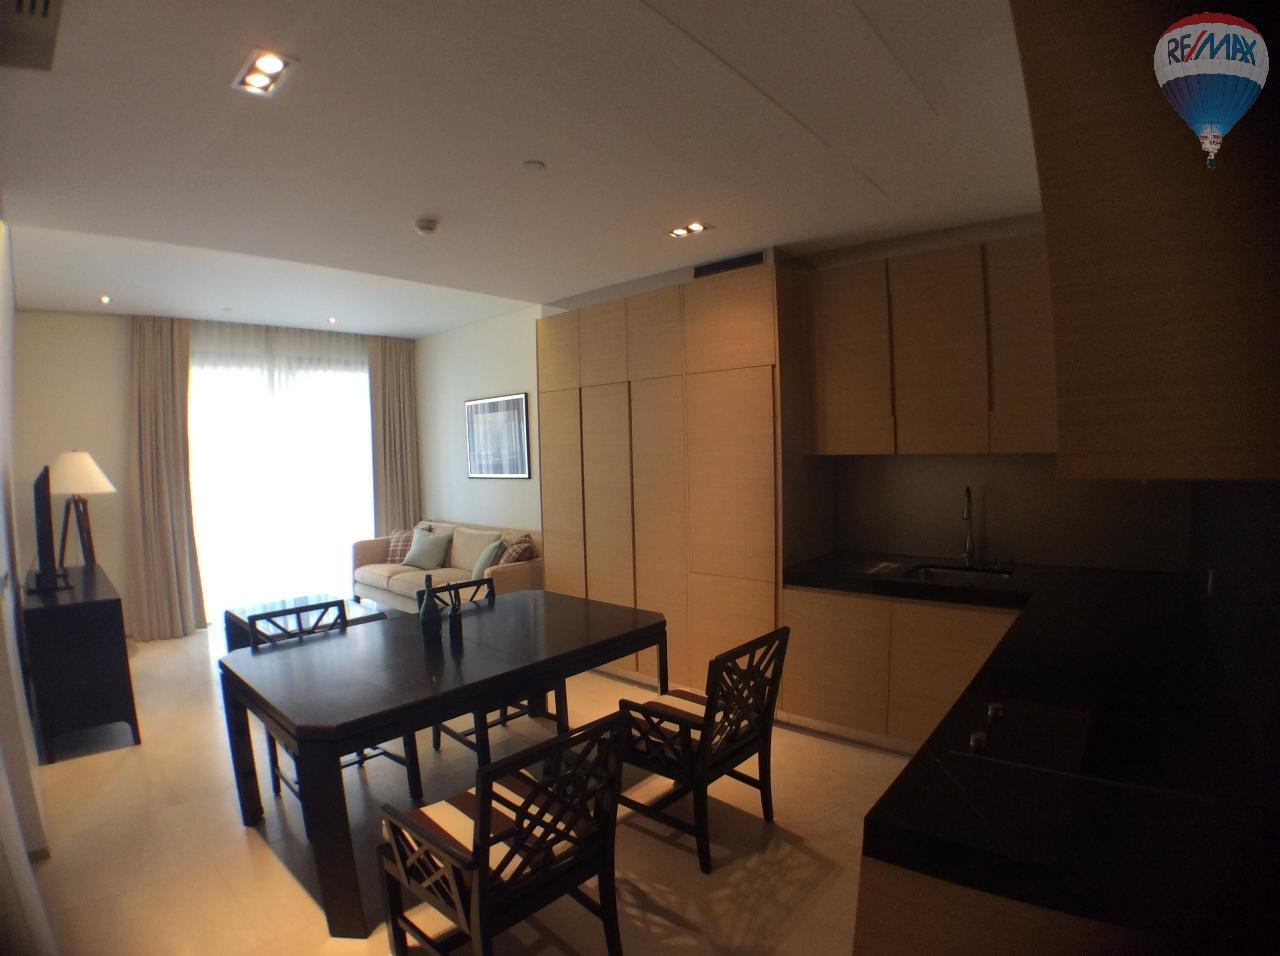 RE/MAX BestLife Agency's Saladaeng Residences 1 bedroom, Saladaeng BTS, Silom MRT, condo for rent 4